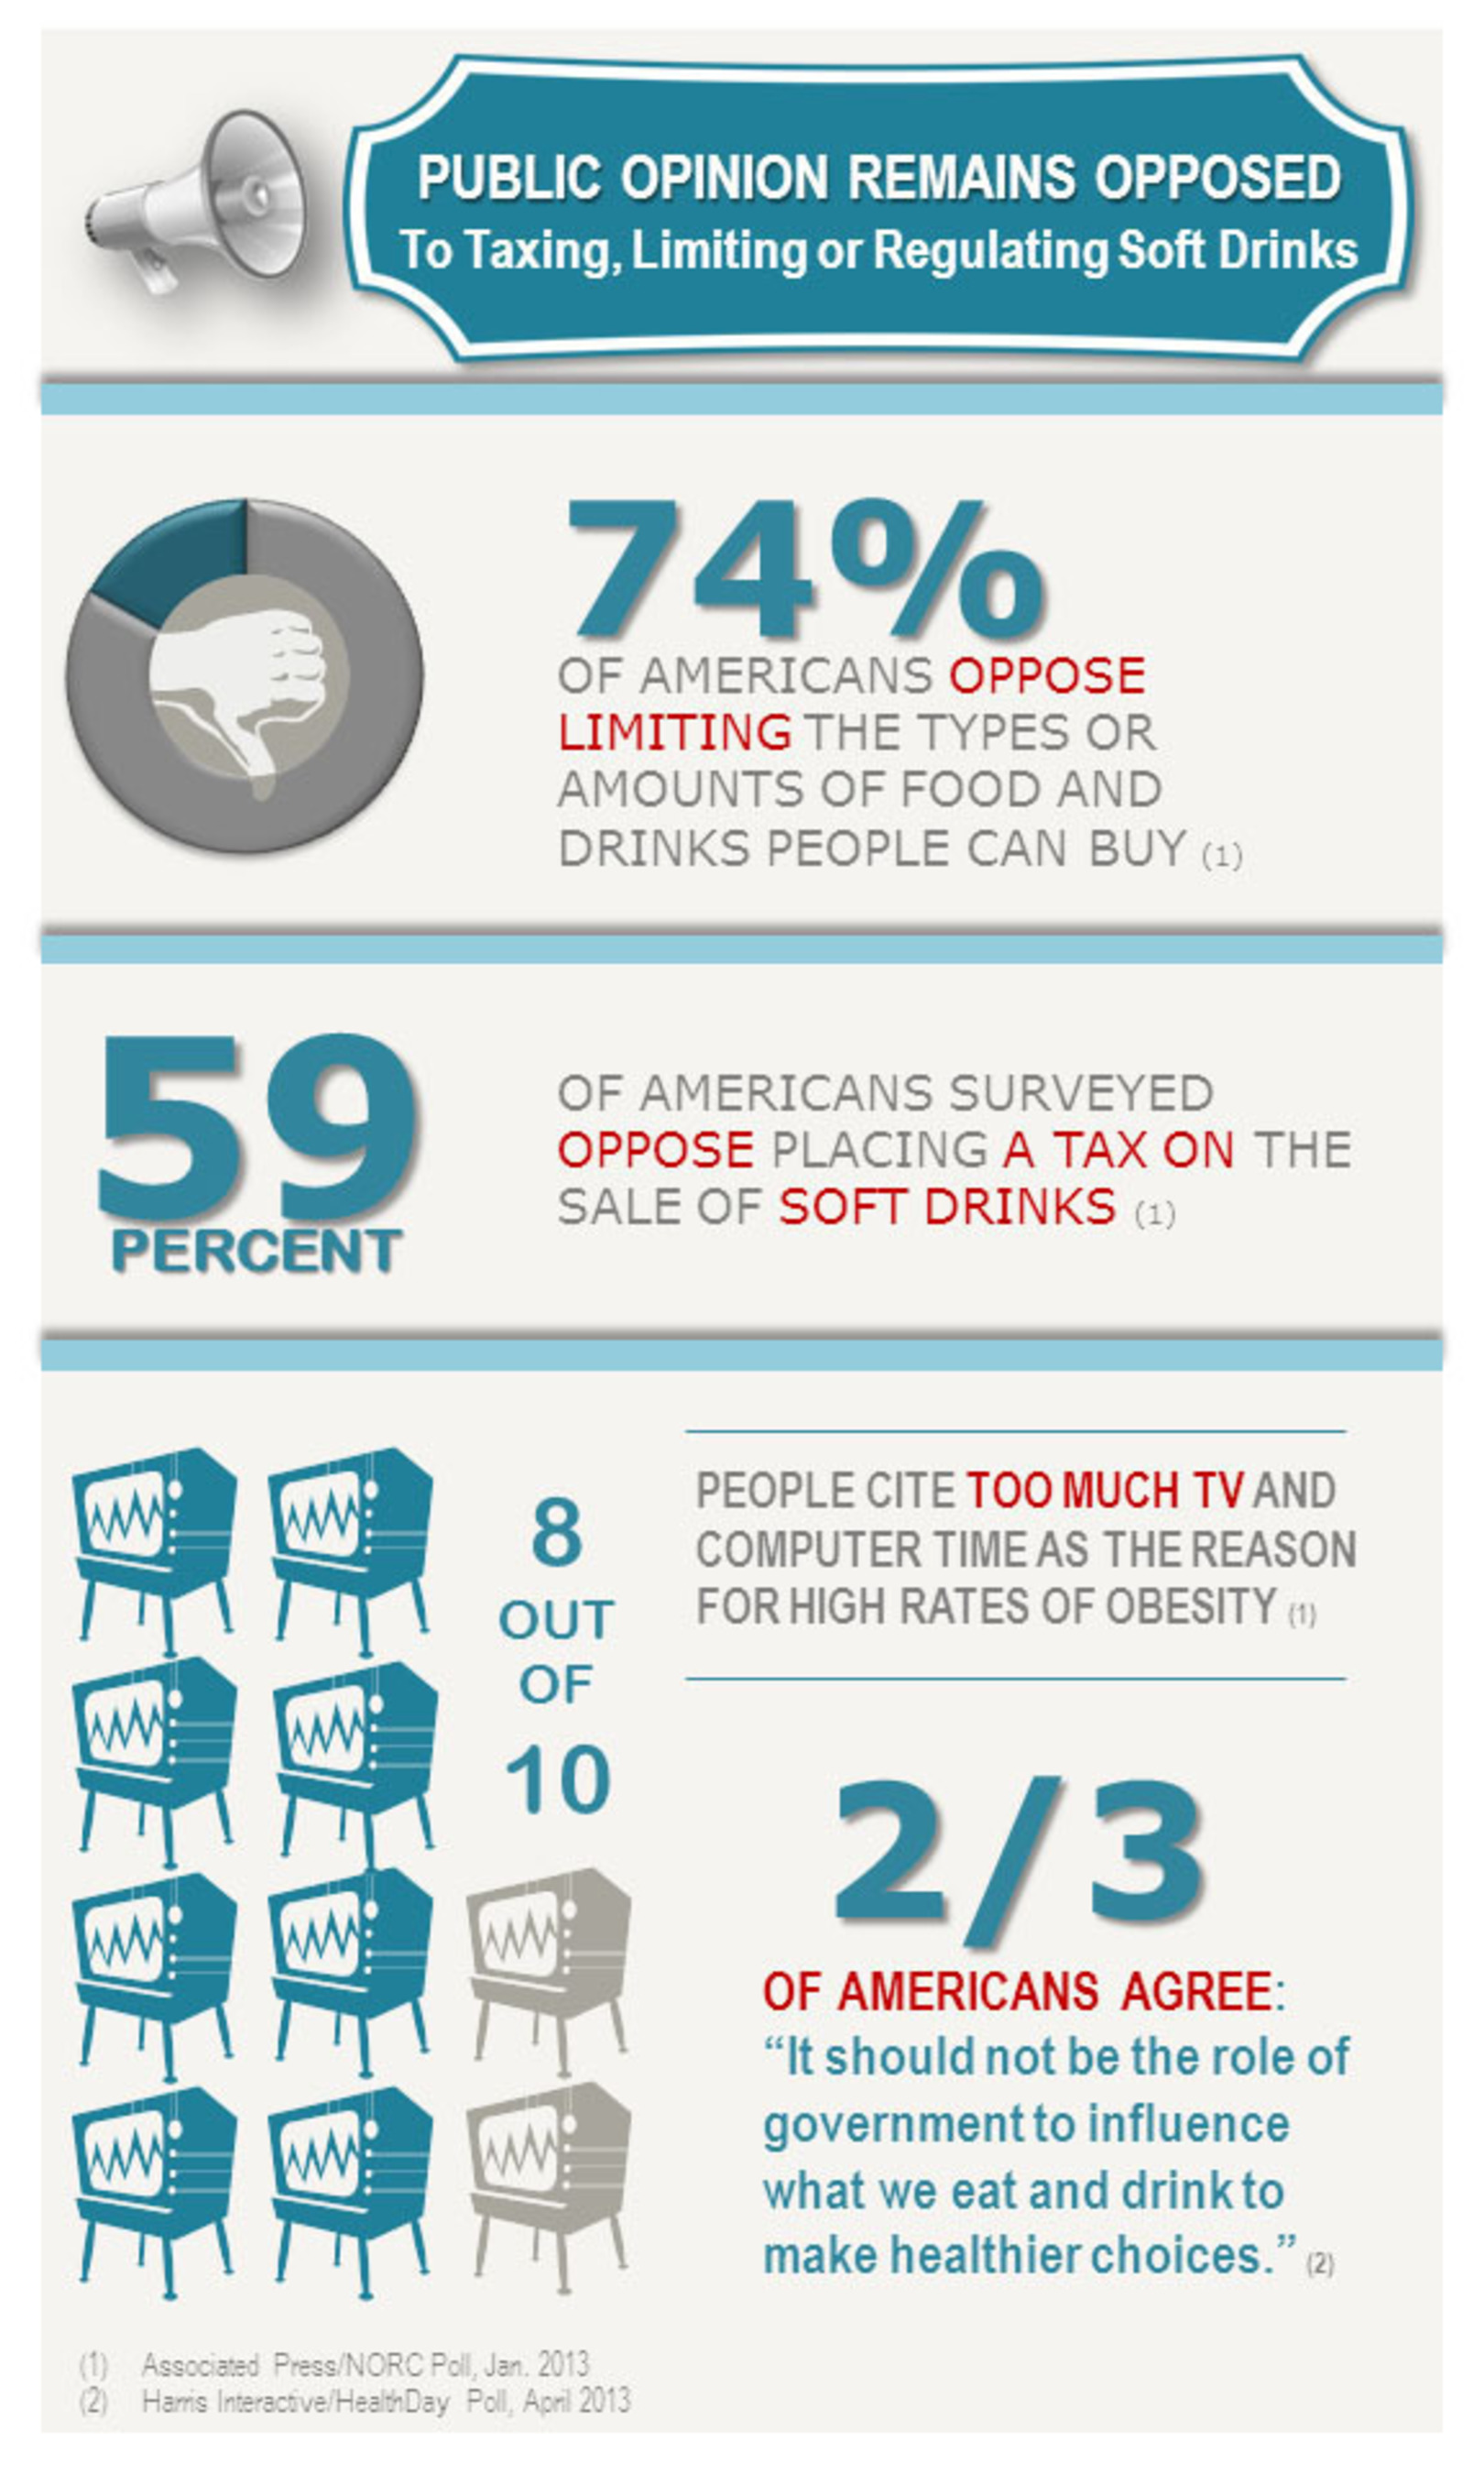 Public Opinion Remains Opposed To Taxing, Limiting Soft Drinks. (PRNewsFoto/American Beverage Association) ...